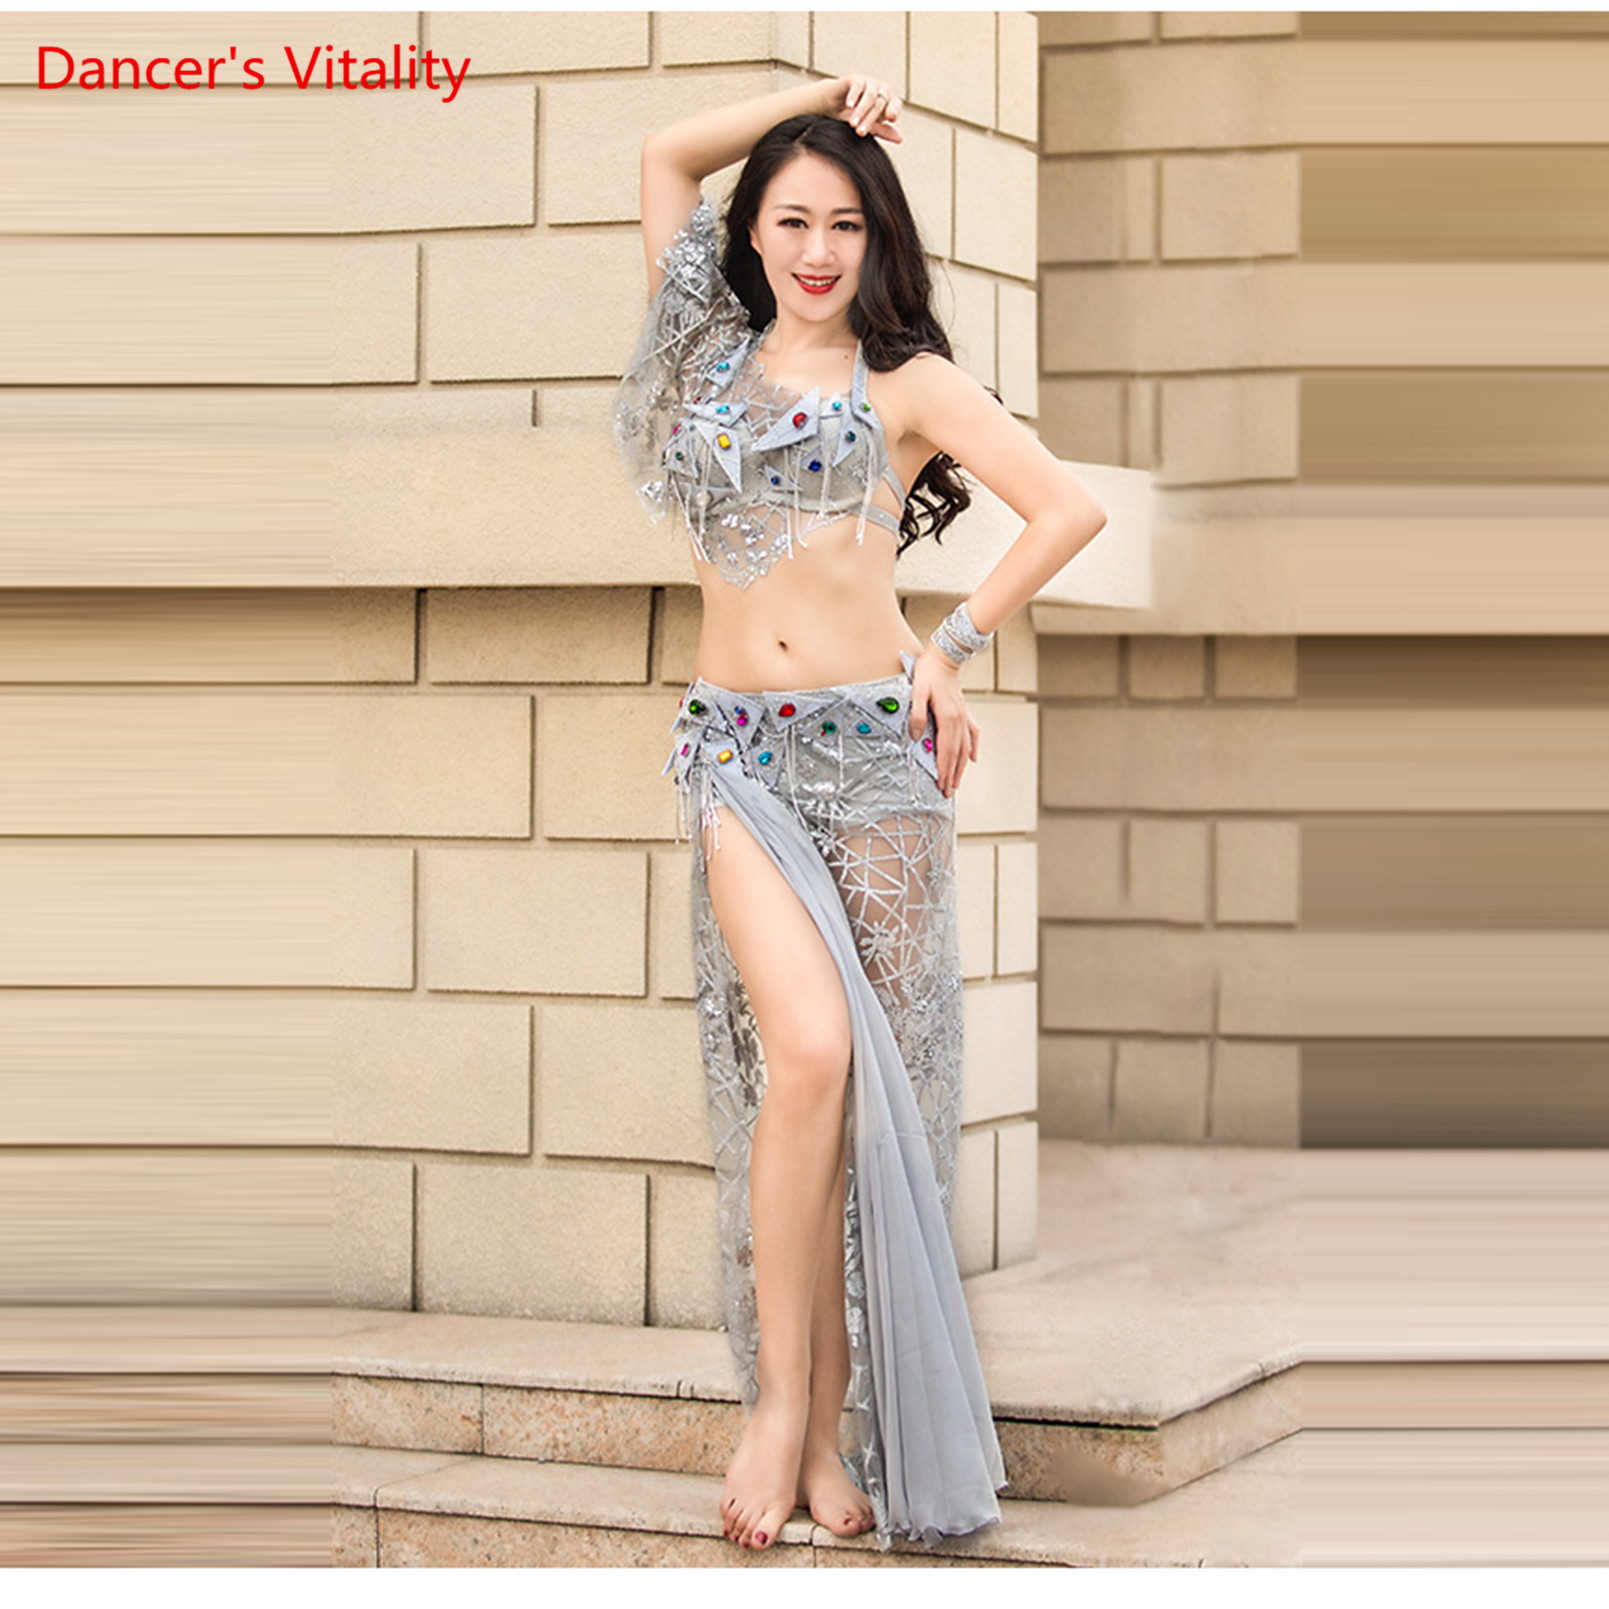 Belly Dance Performance Outfit Suit Women 2019 New Summer High-End Dress Luxury Bra+Skirt 2pcs Set